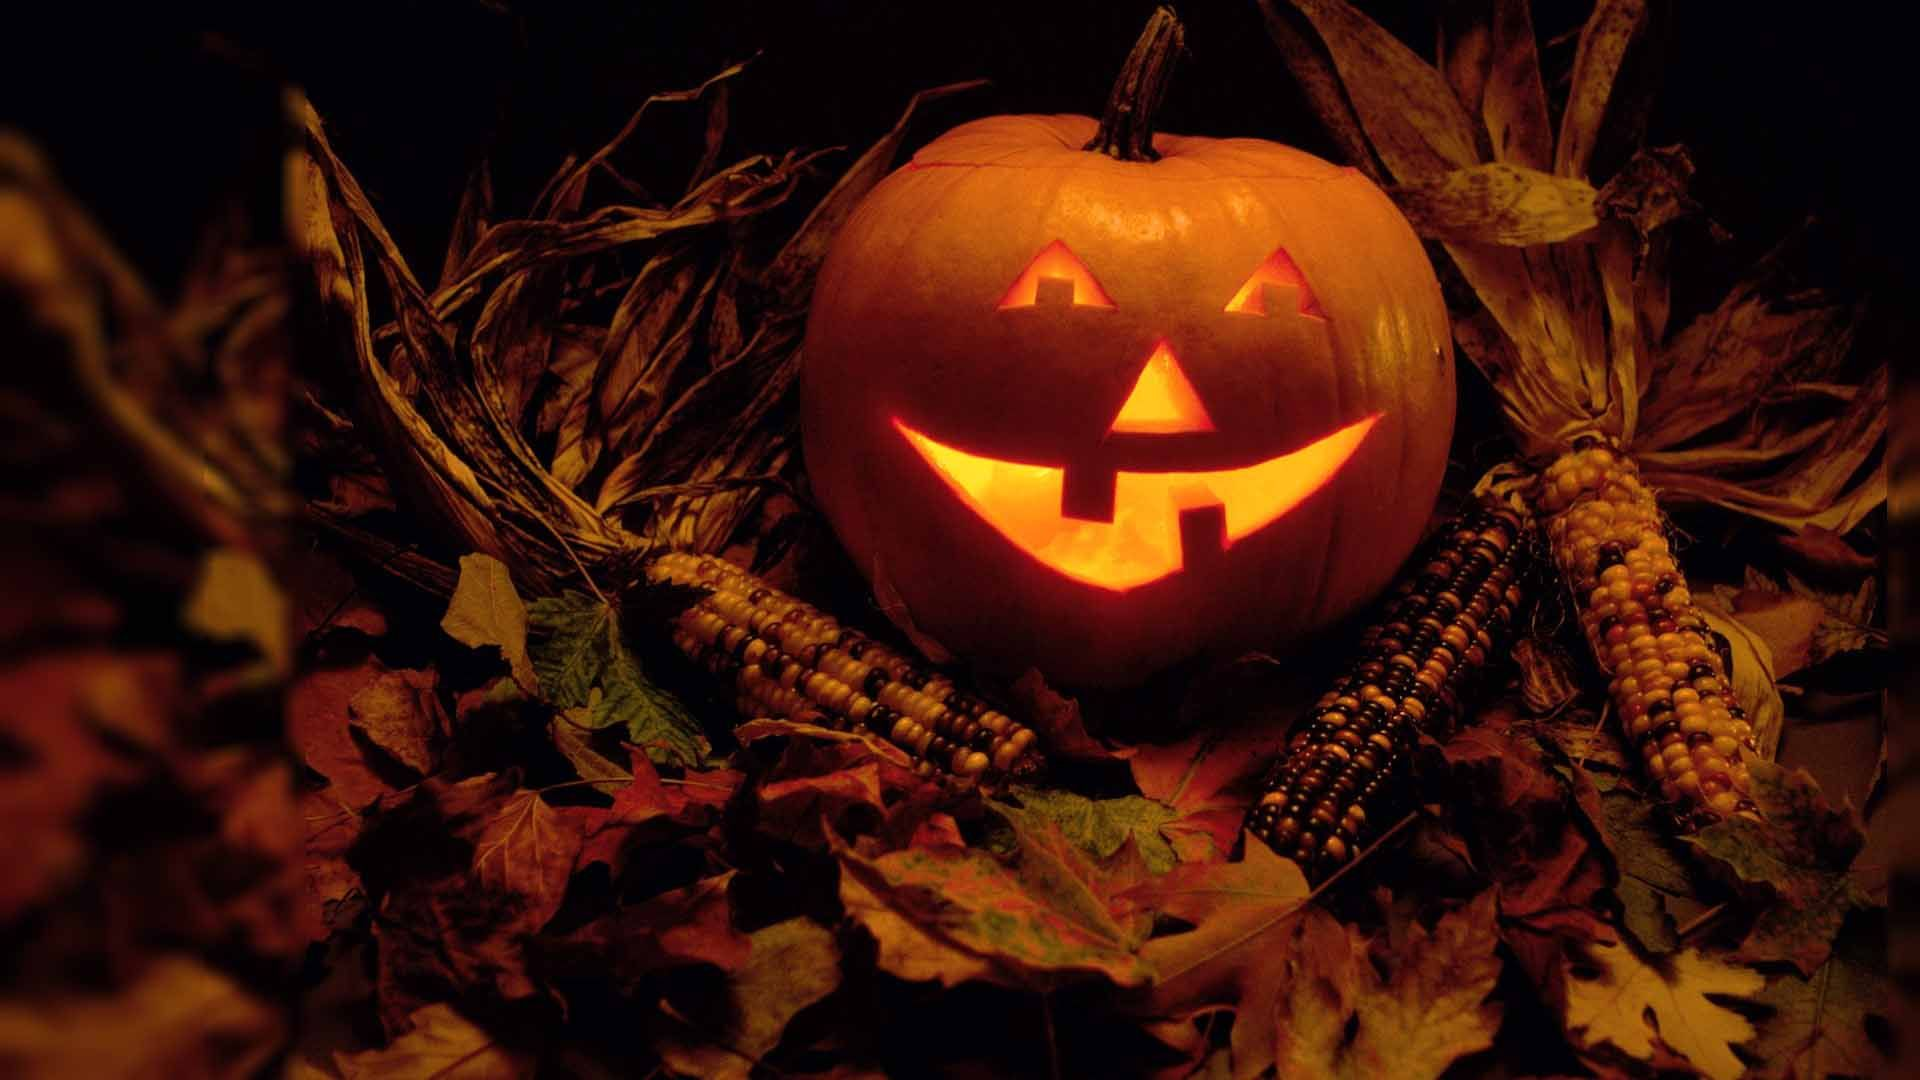 Download The Latest Happy Halloween HD Images, Wallpapers, Pictures U0026 Photos